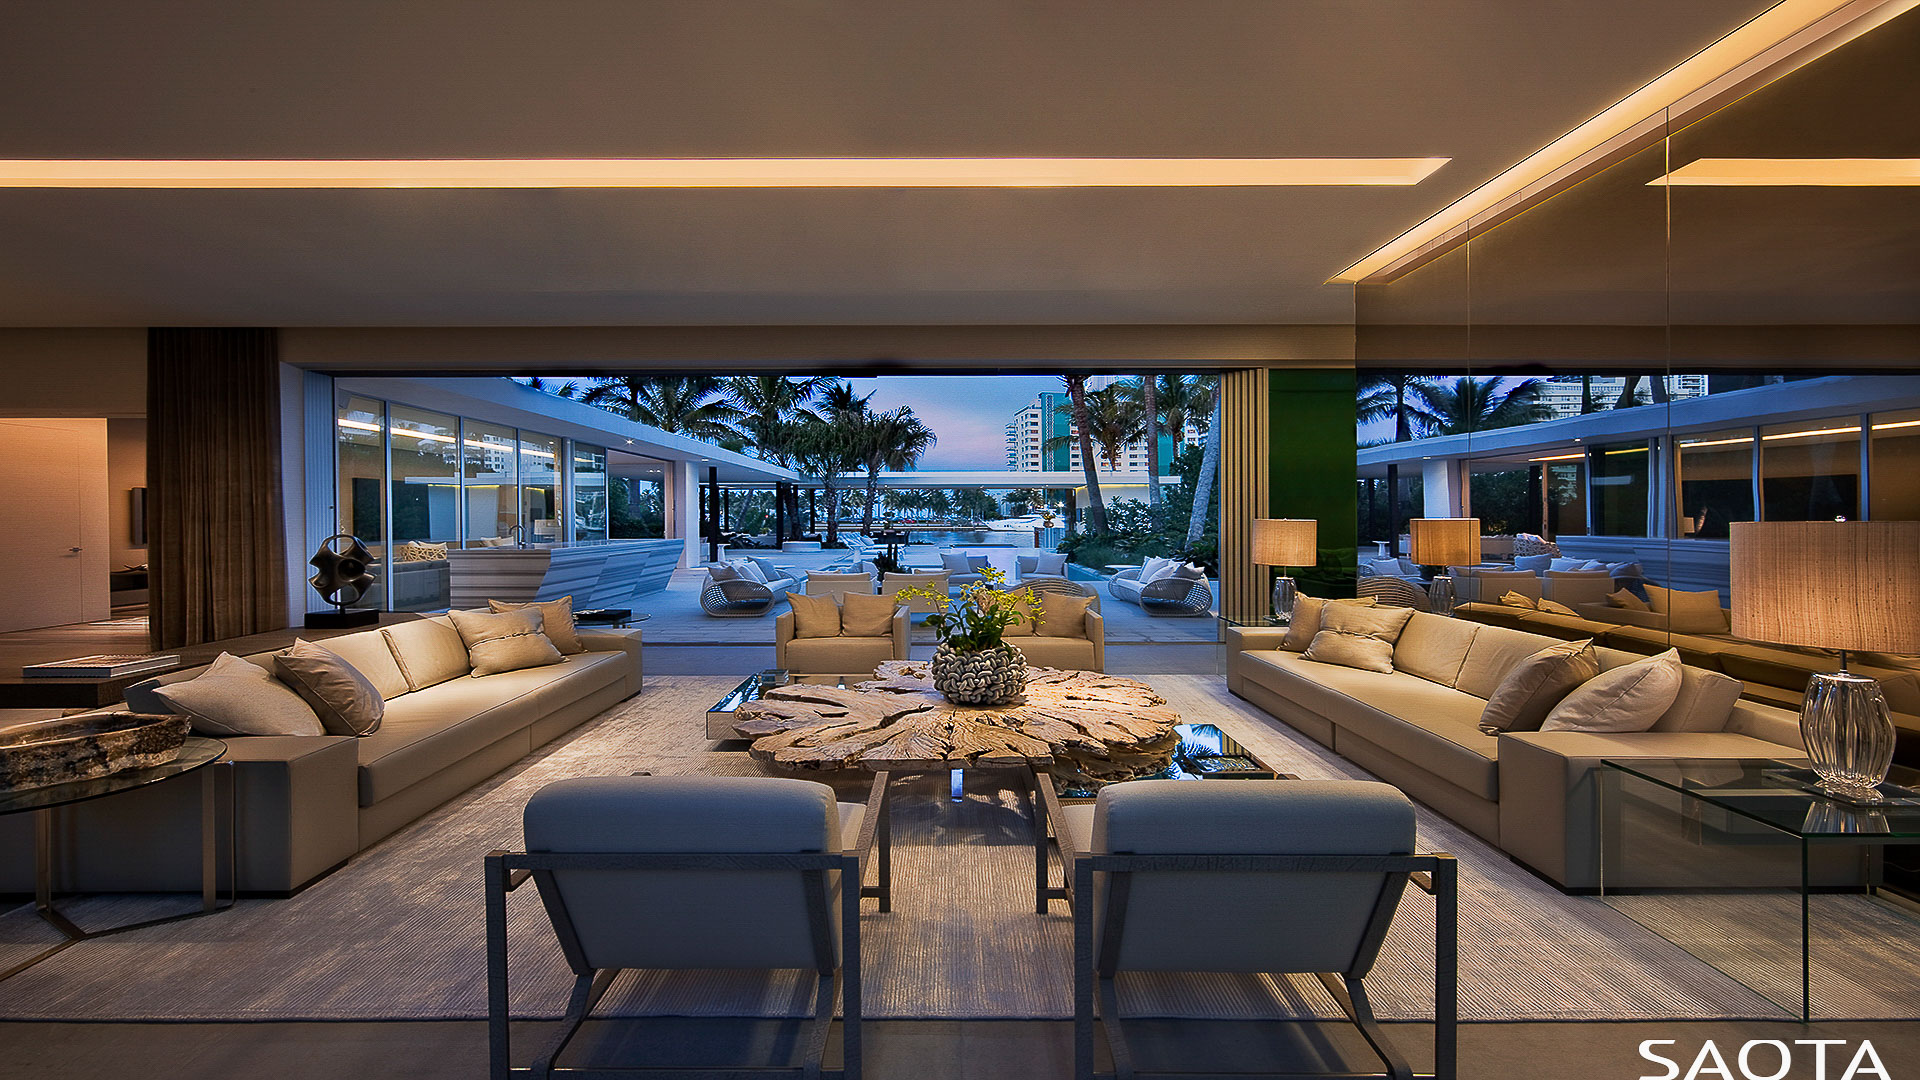 The Miami house at night